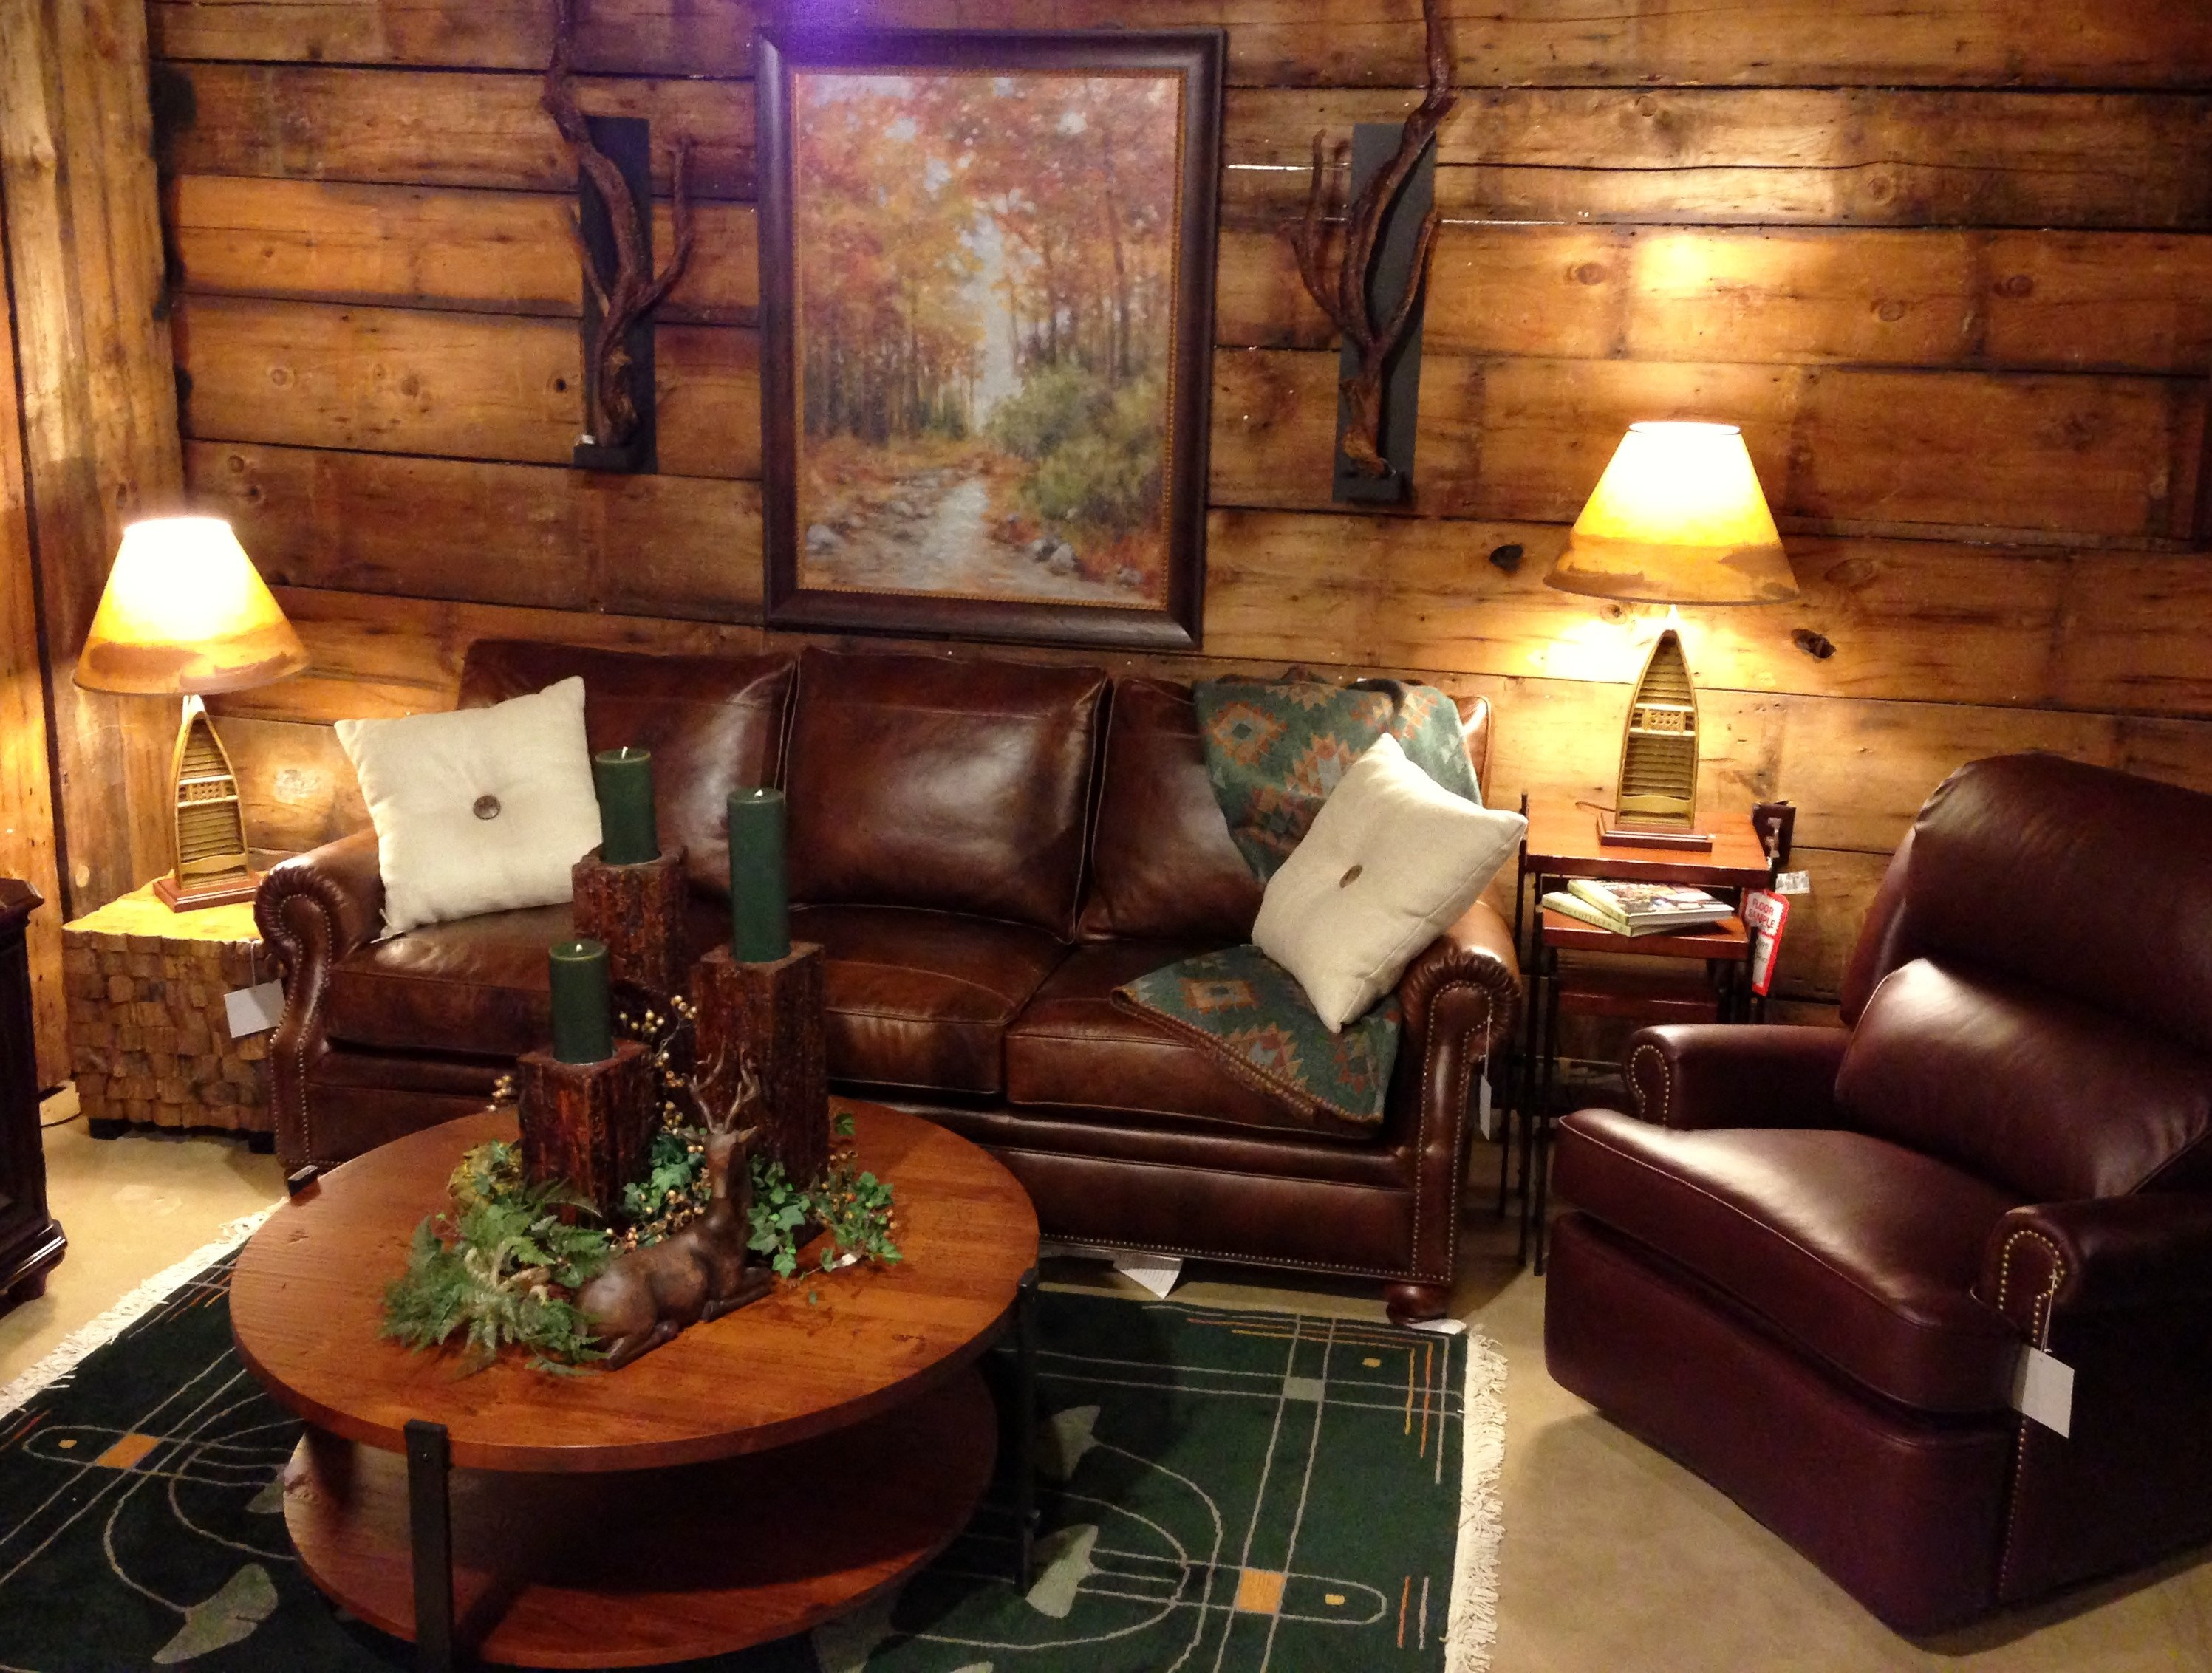 Small Rustic Living Room Ideas Unique which Living Room is Right for You